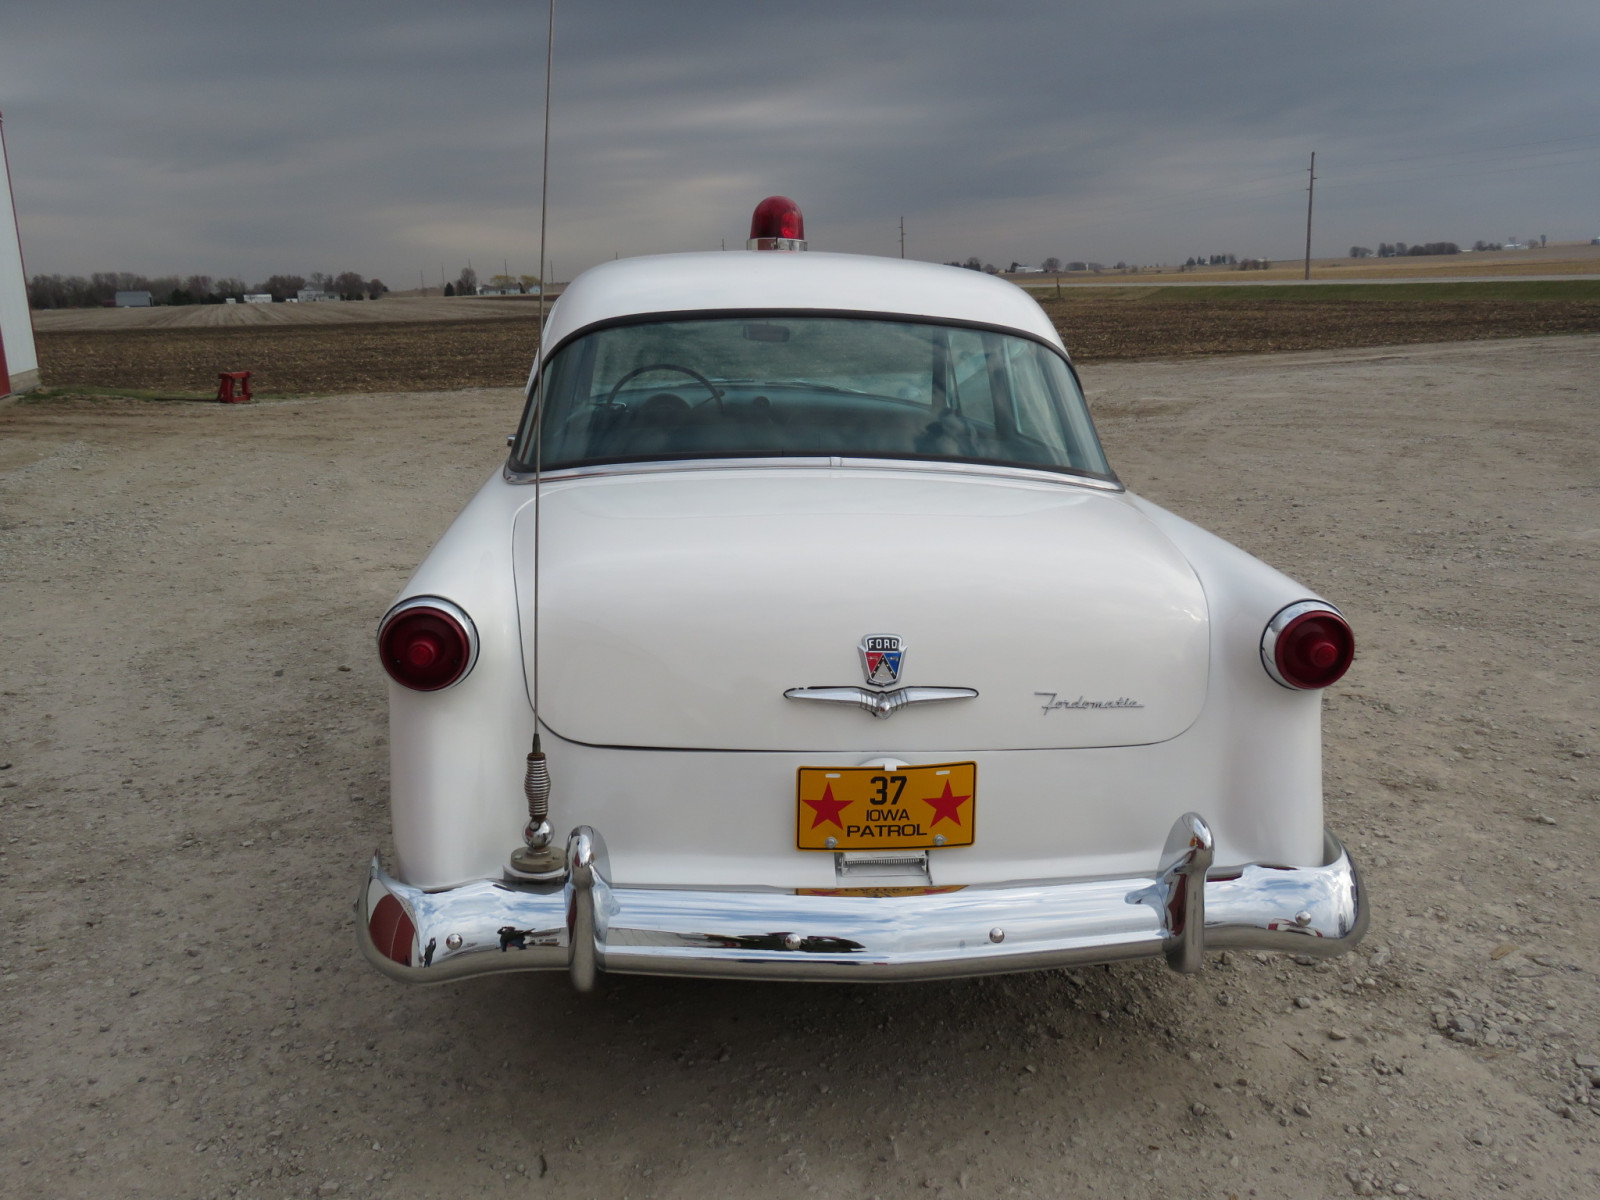 1953 Ford Mainline Iowa Patrol Car - Image 5